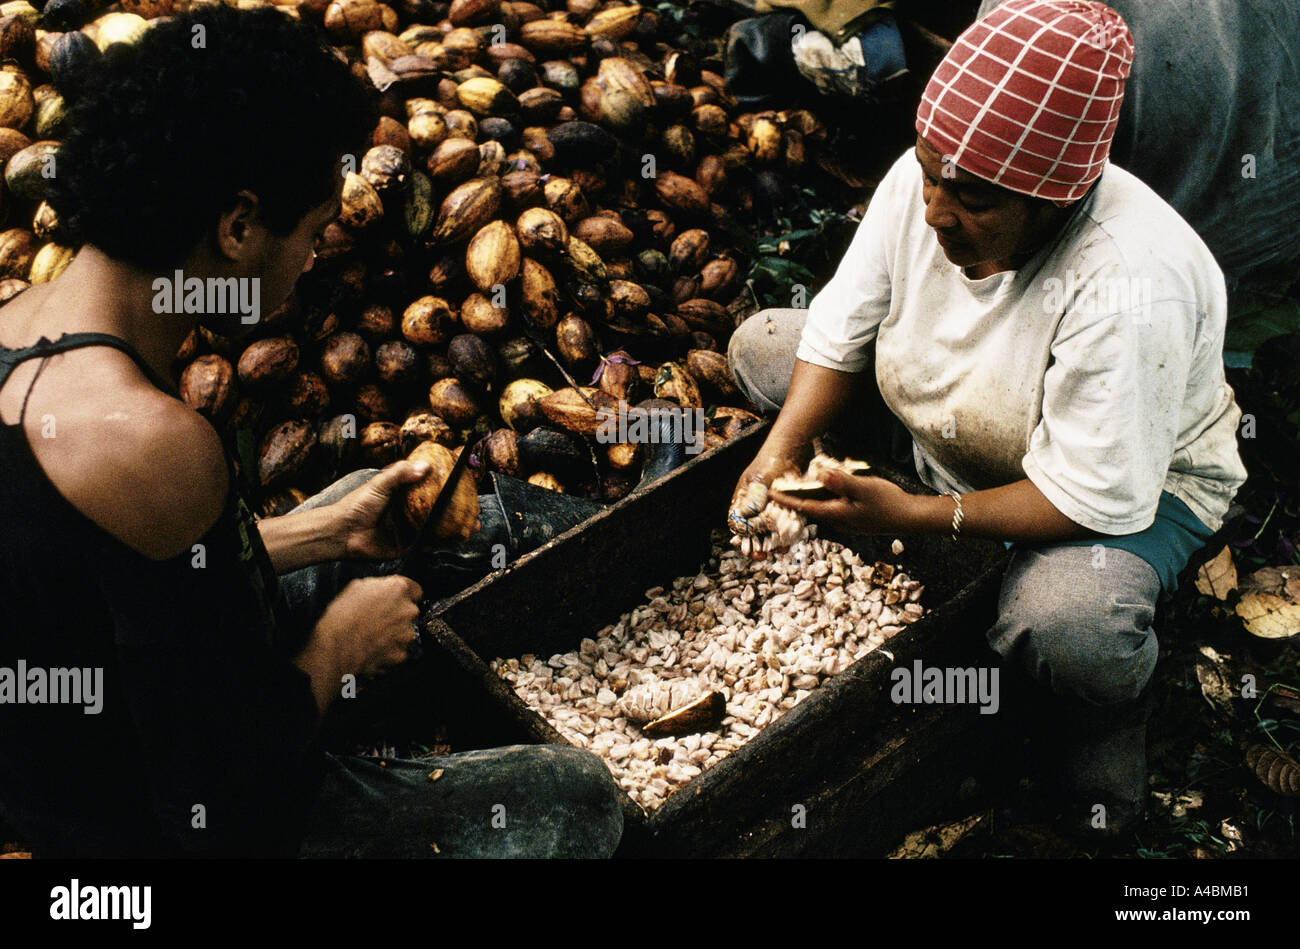 Cacao pods are sliced open to extract the beans to make chocolate.  Before if a worker sliced off a finger or thumb compensation was paid. Now the owners have abolished the system. They claimed that workers used to cut off their fingers deliberately Bahia, July 1991 - Stock Image